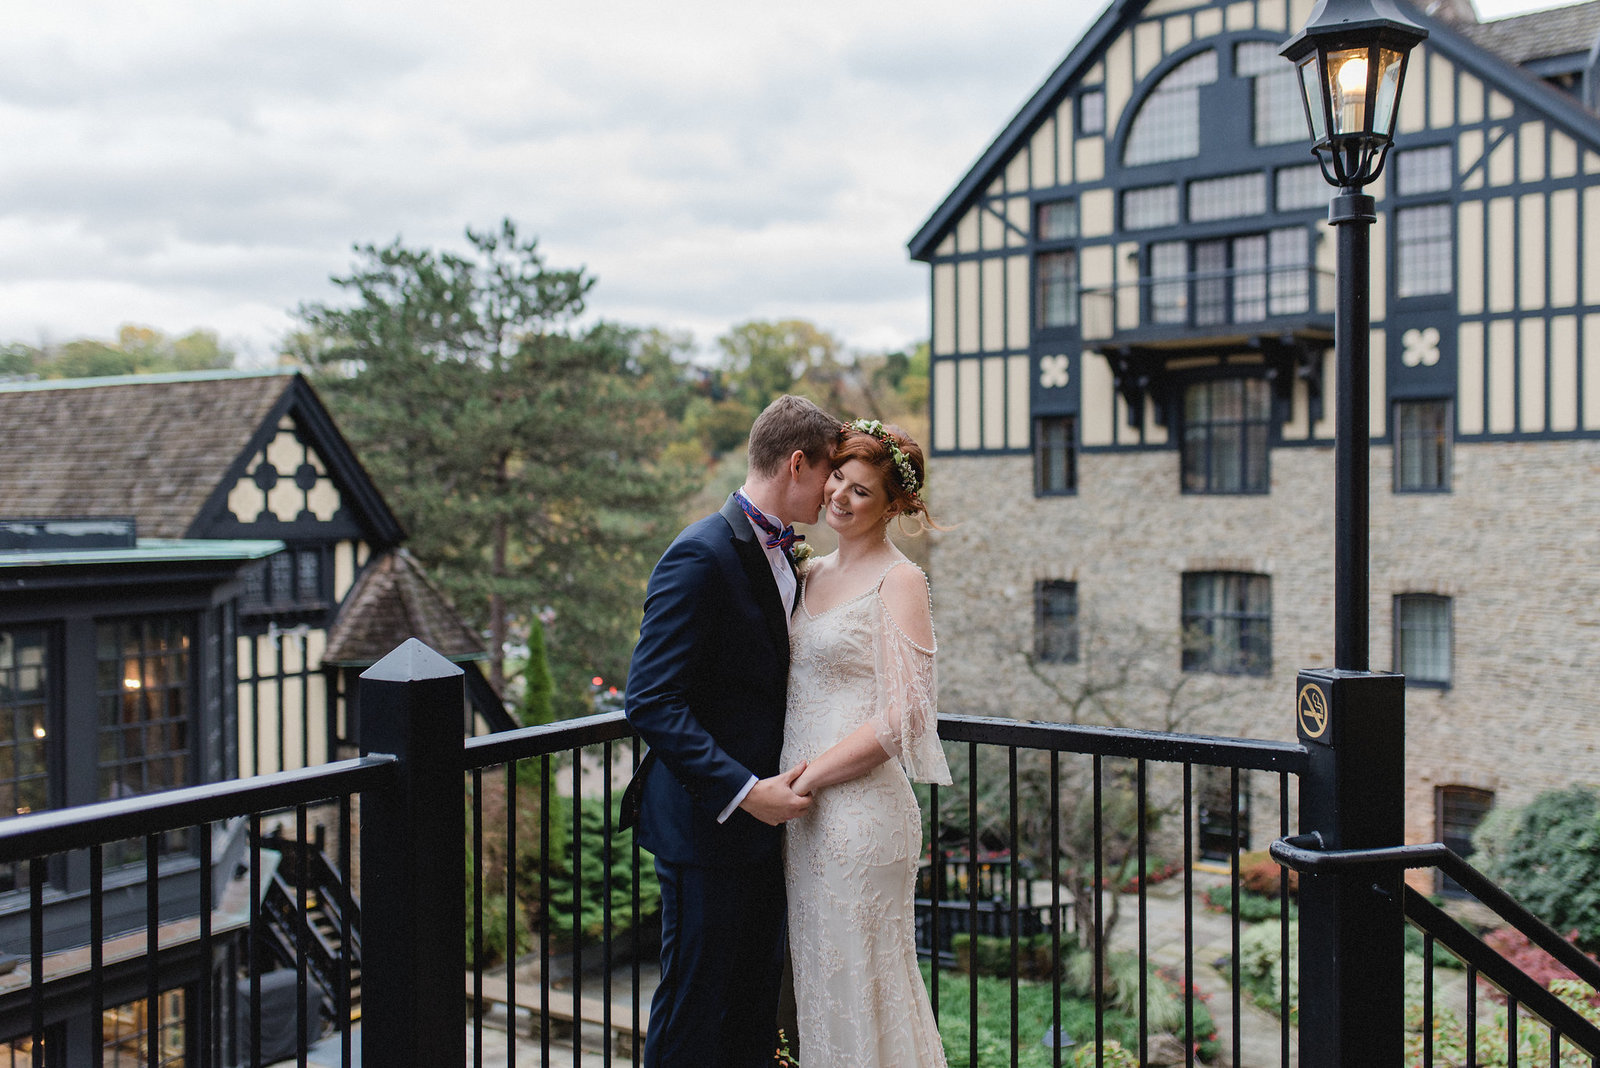 Romantic Bride and Groom Old Mills Toronto Wedding Boho Chic | Jacqueline James Photography